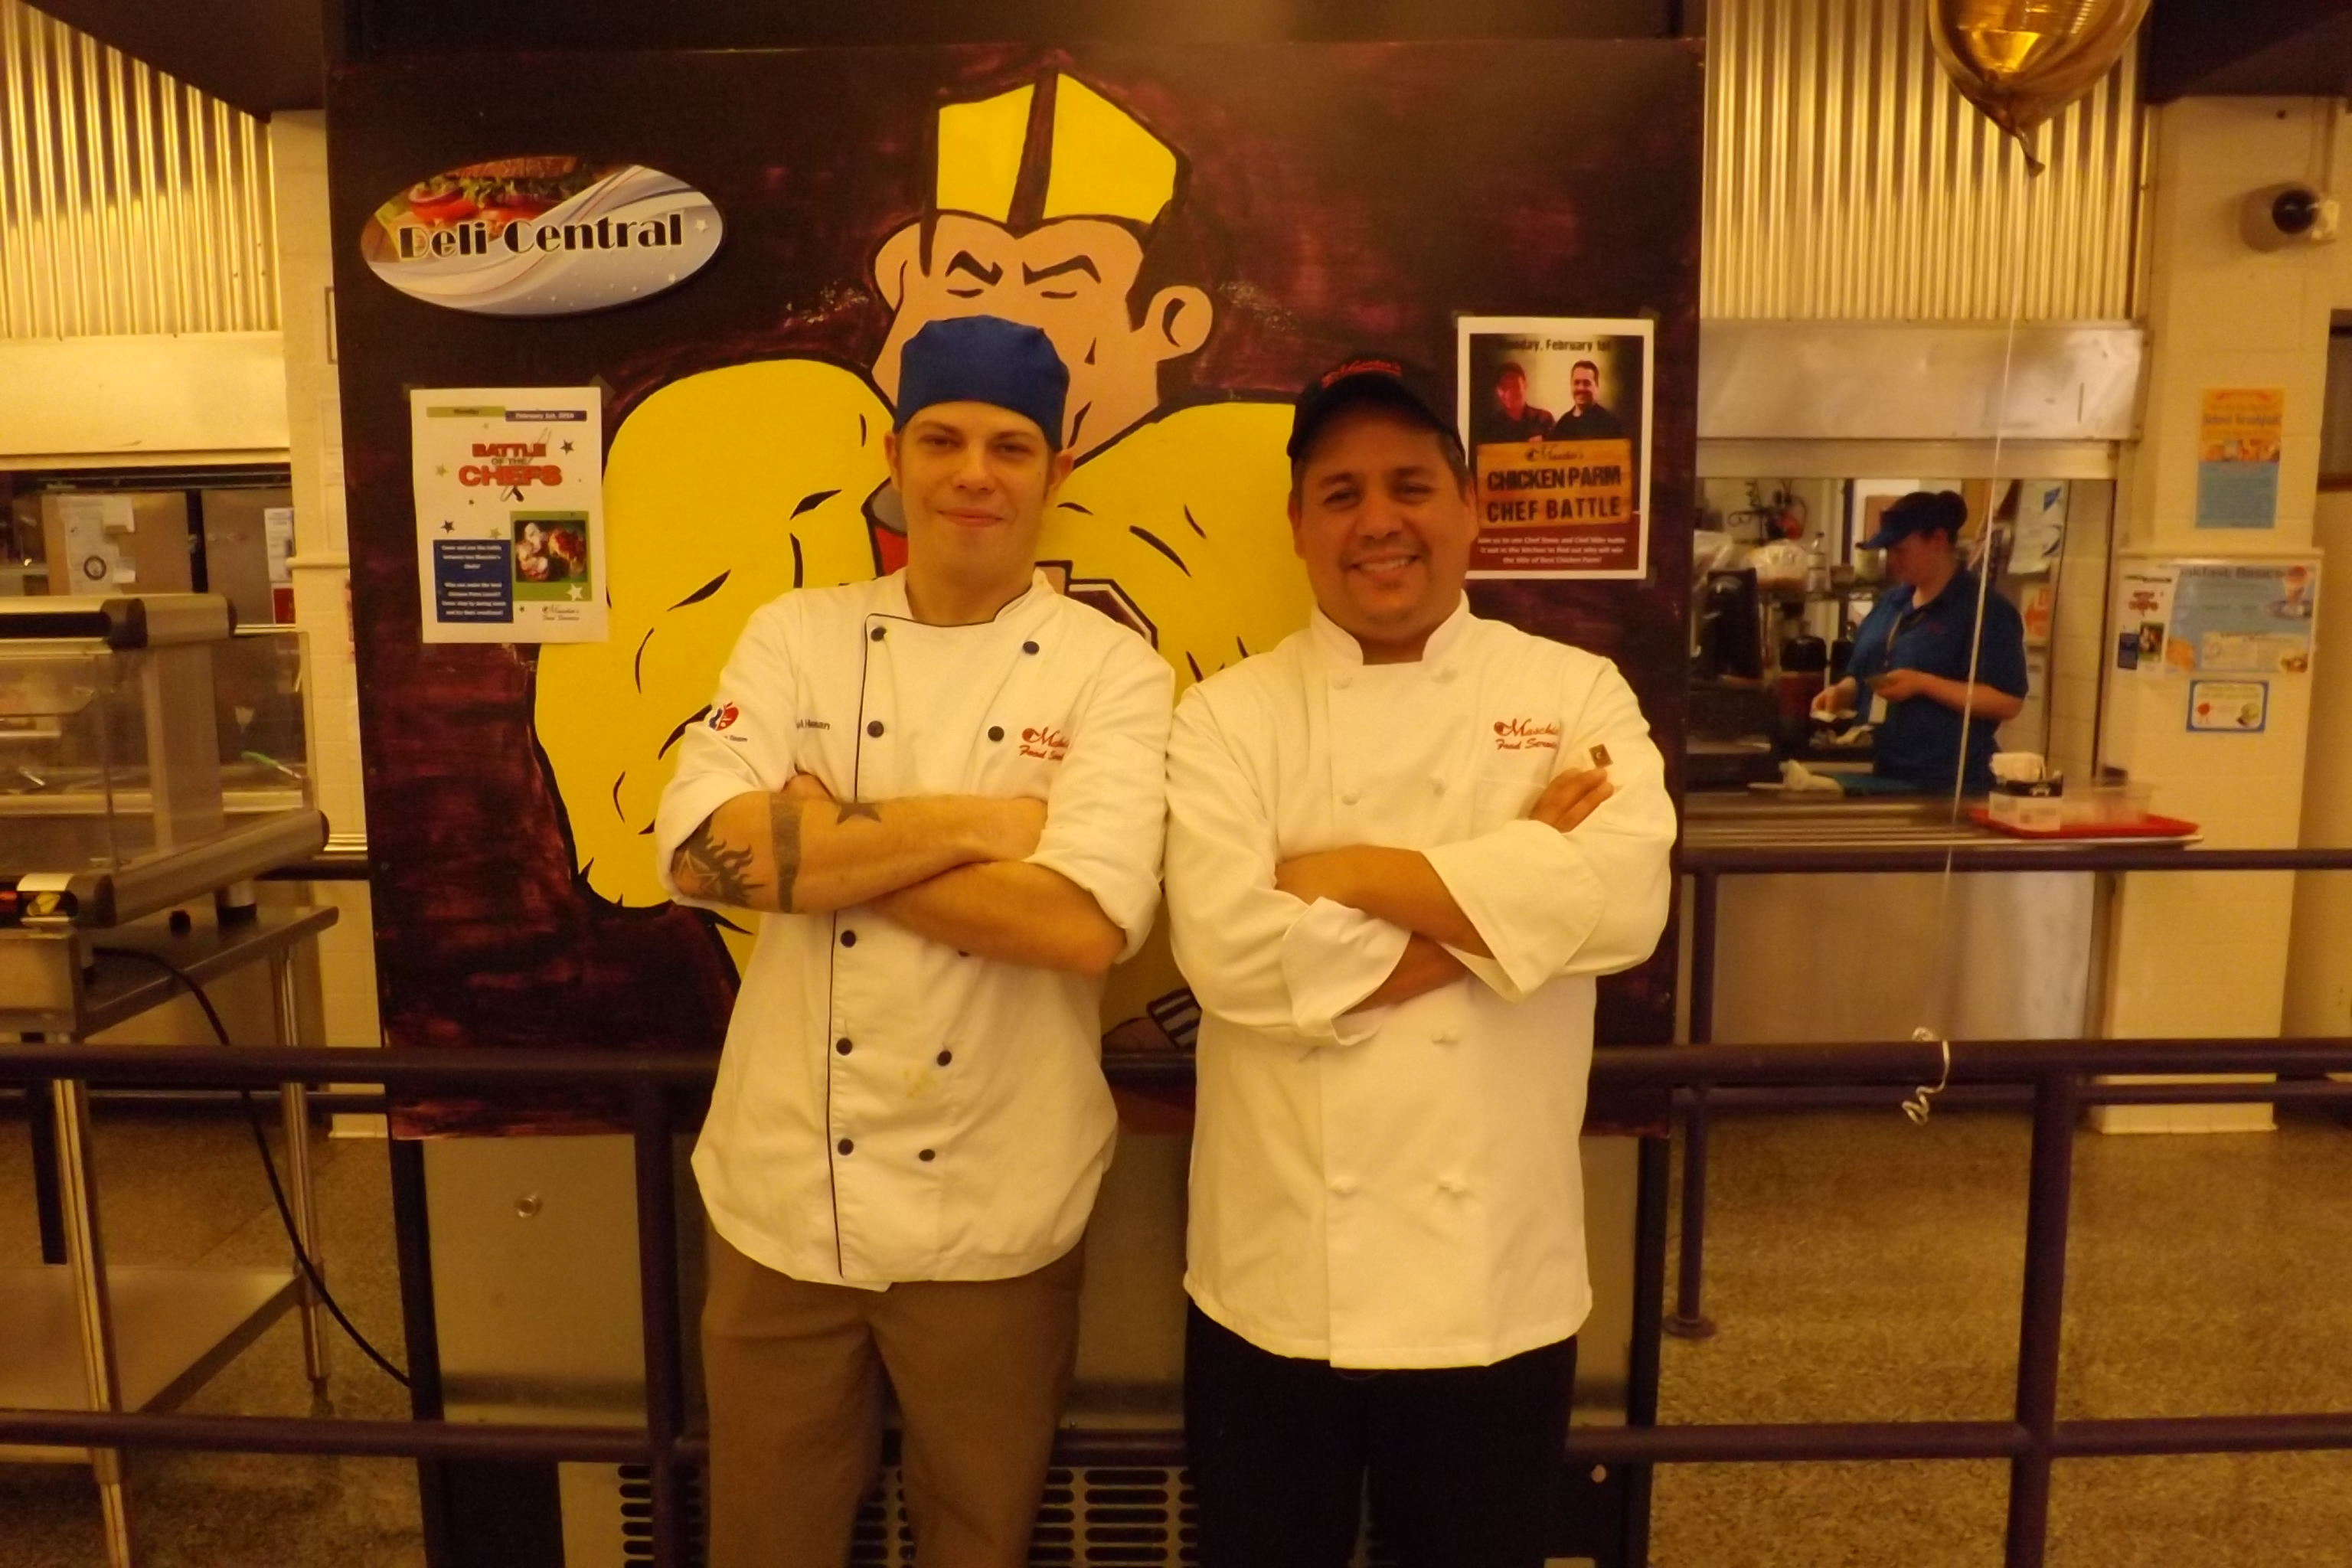 Pictured from left: Corporate Chef Michael Herman and Garfield Chef Steve Escobedo